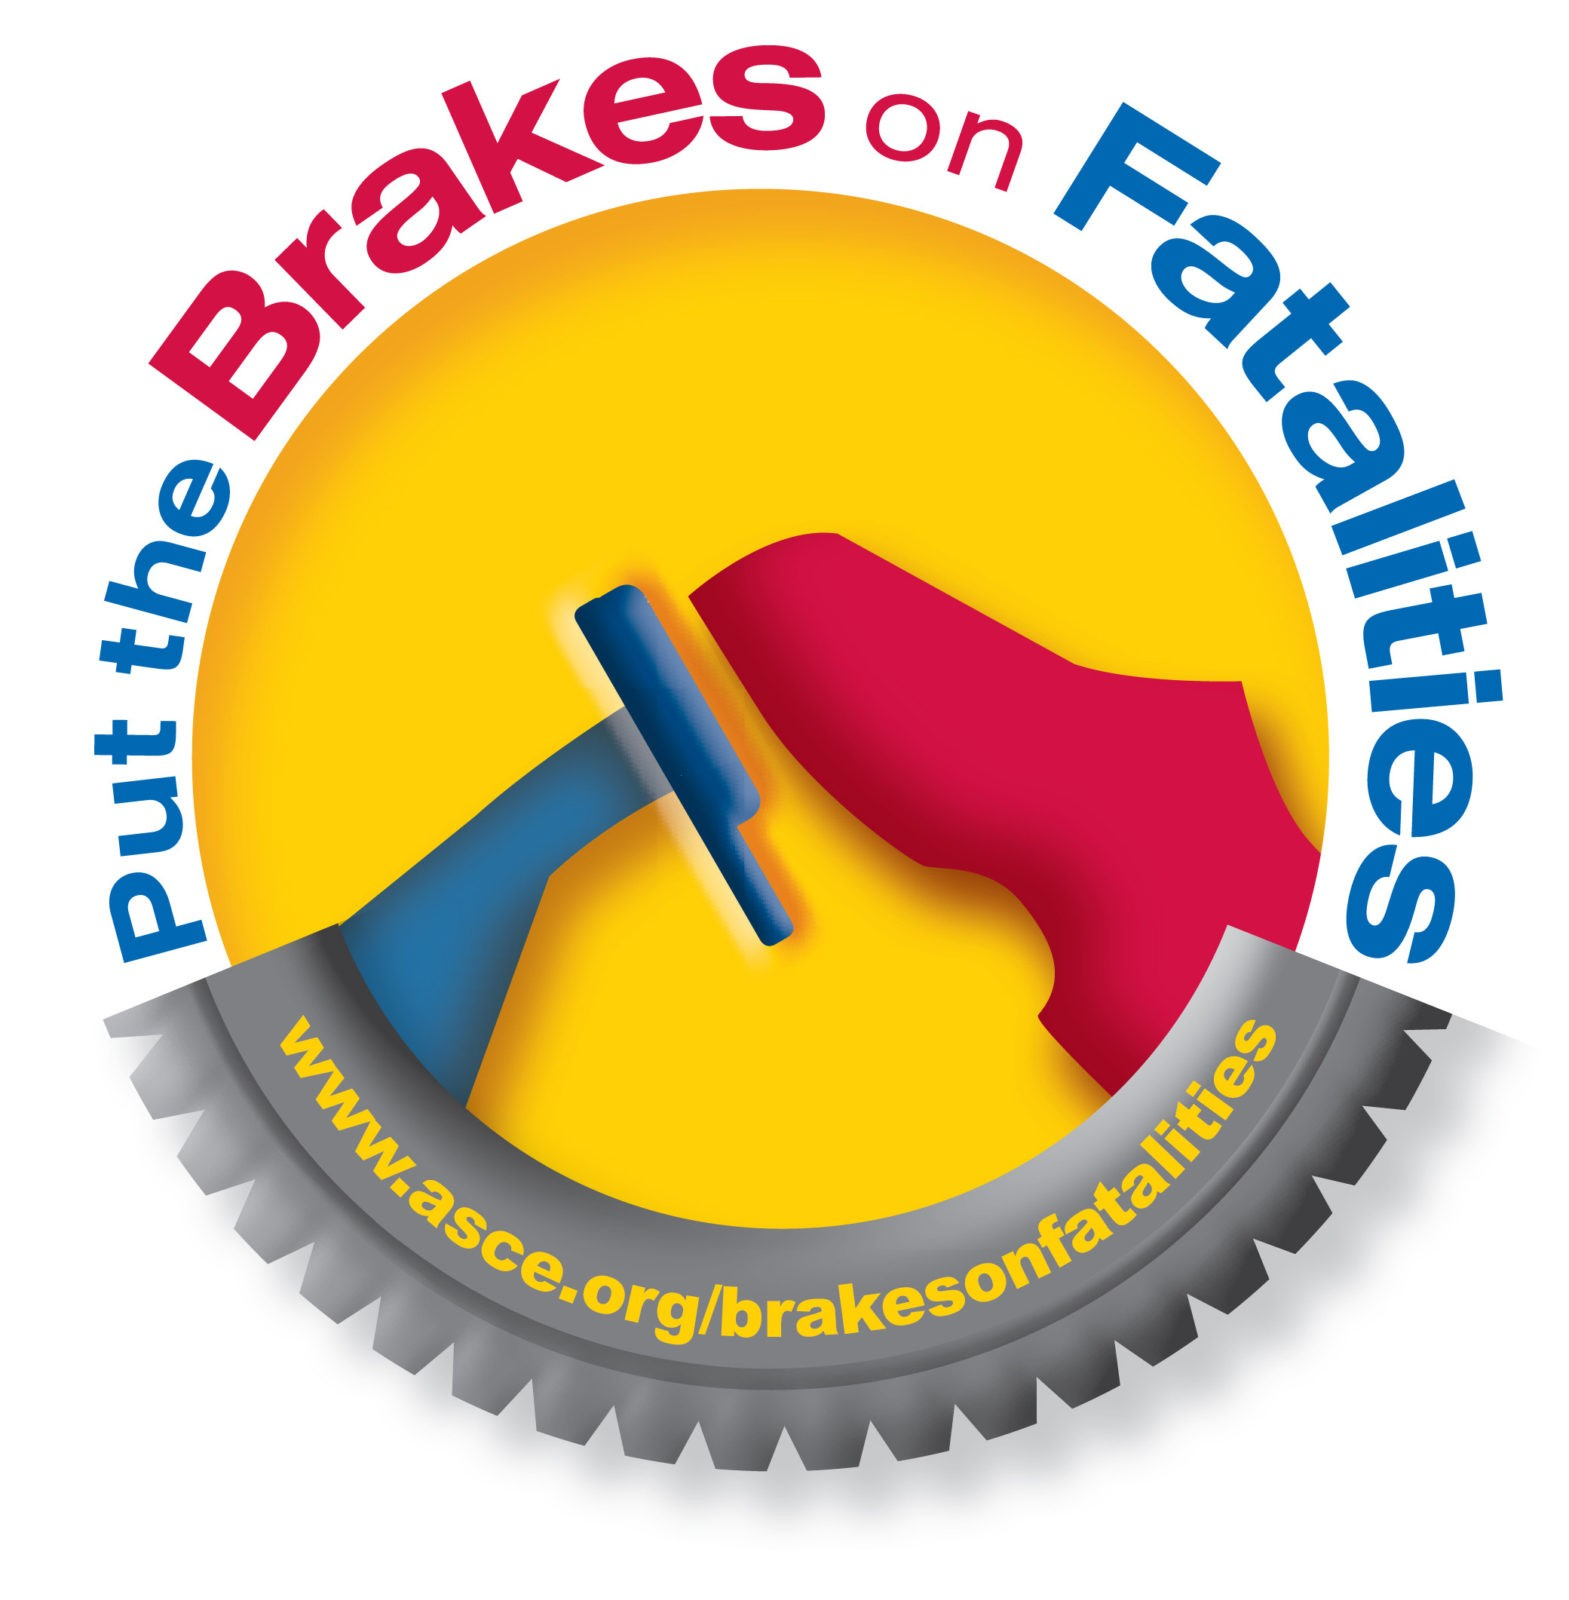 PRP's Put The Brakes on Fatalities Day